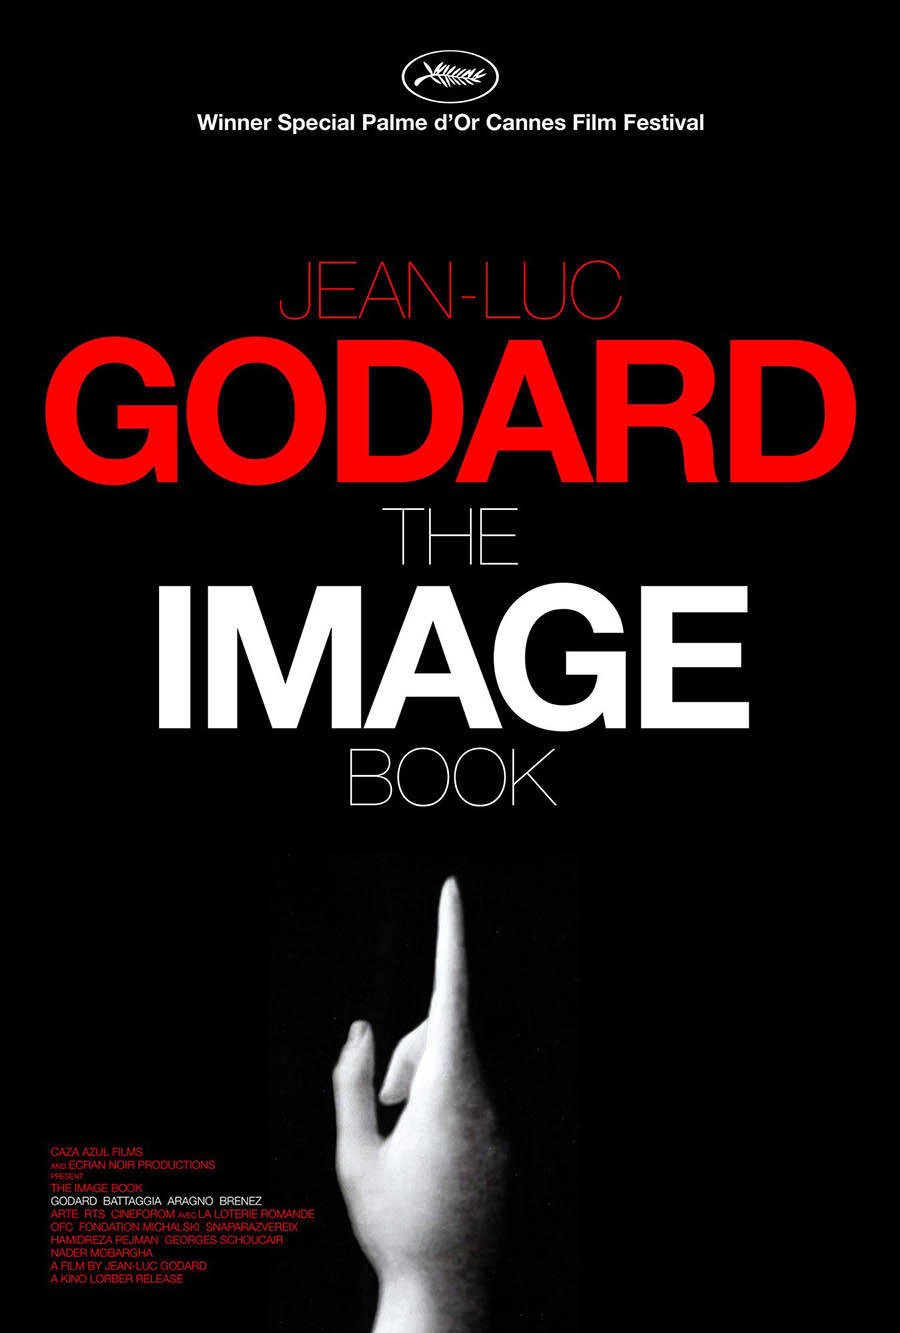 The Image Book poster art